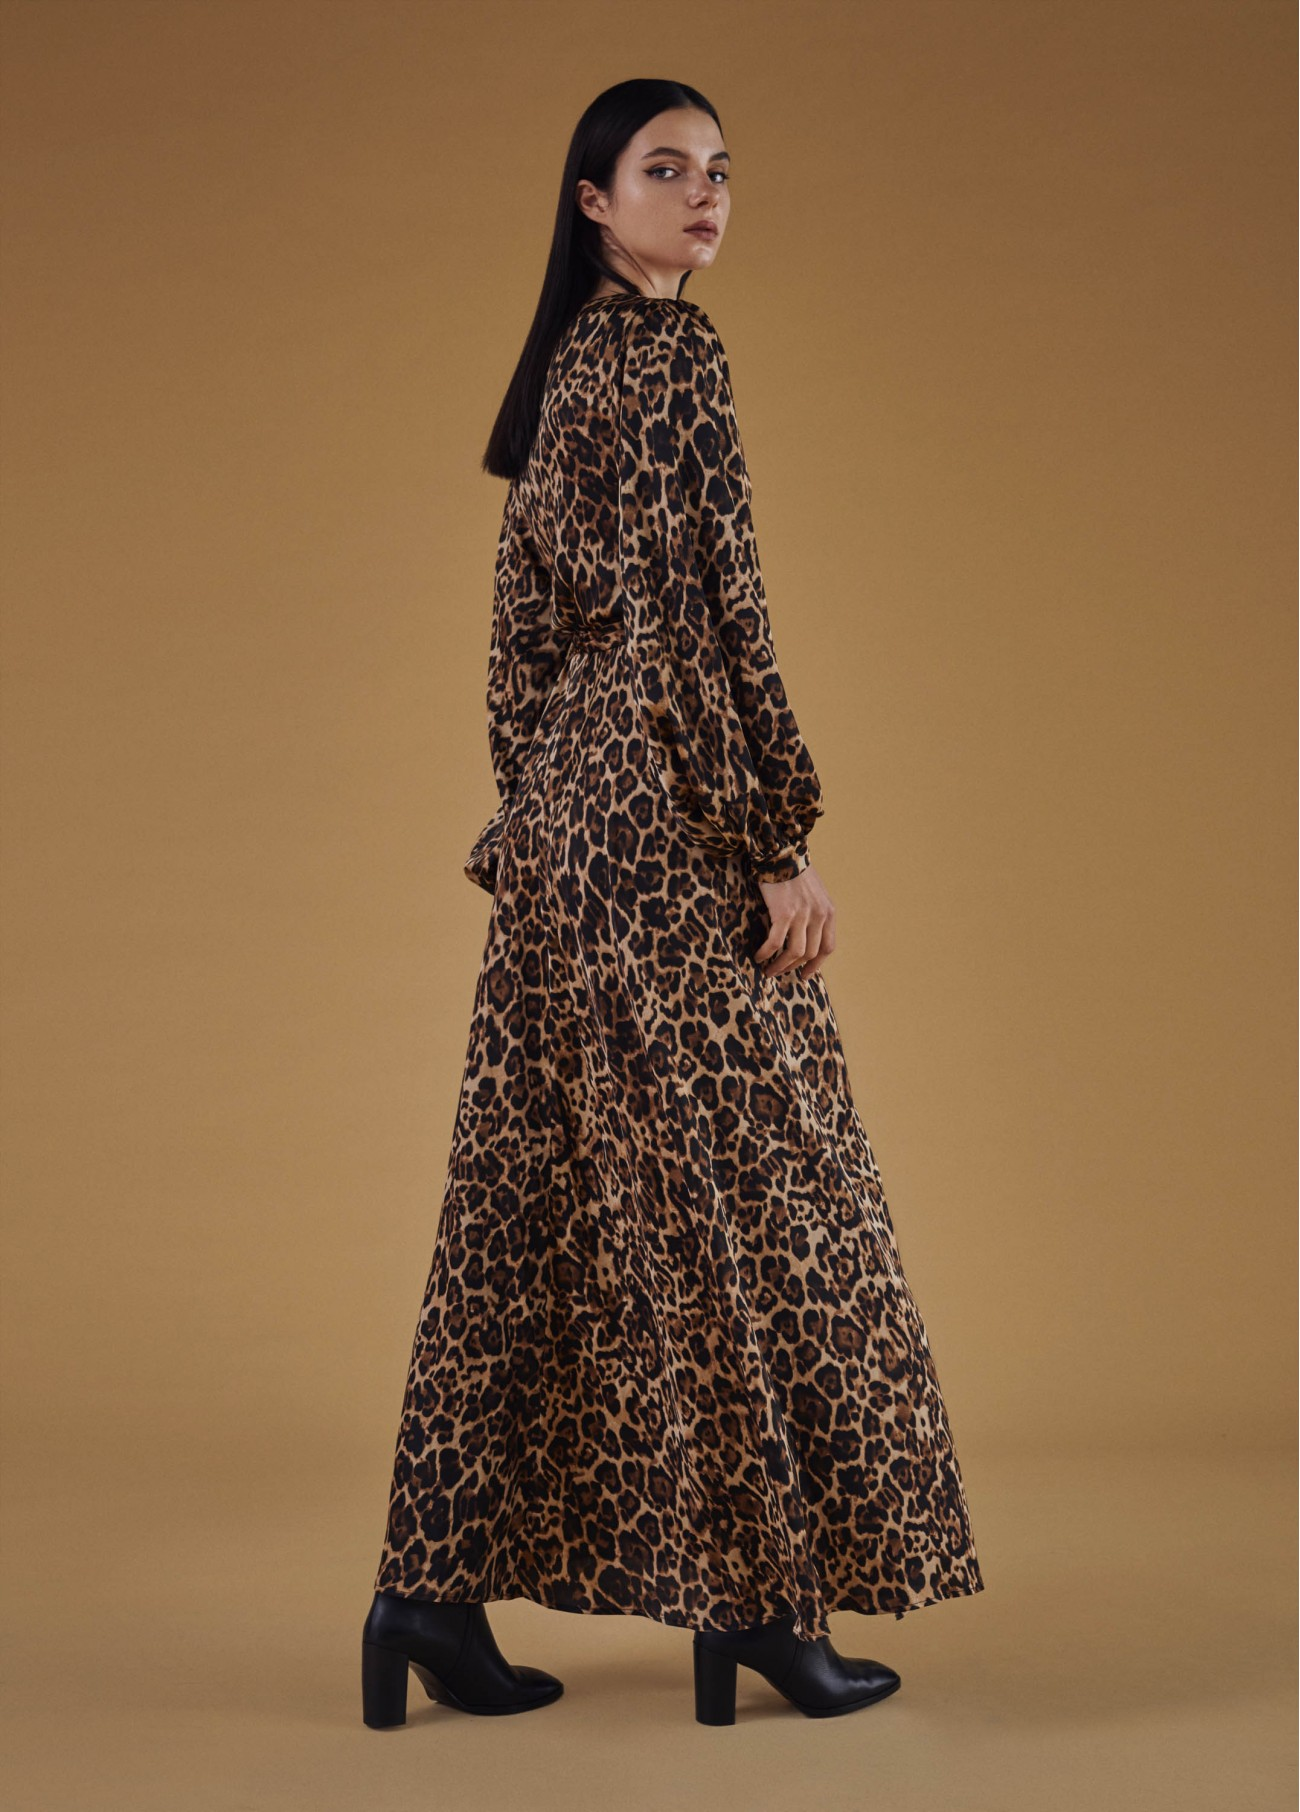 Vestido largo animal print